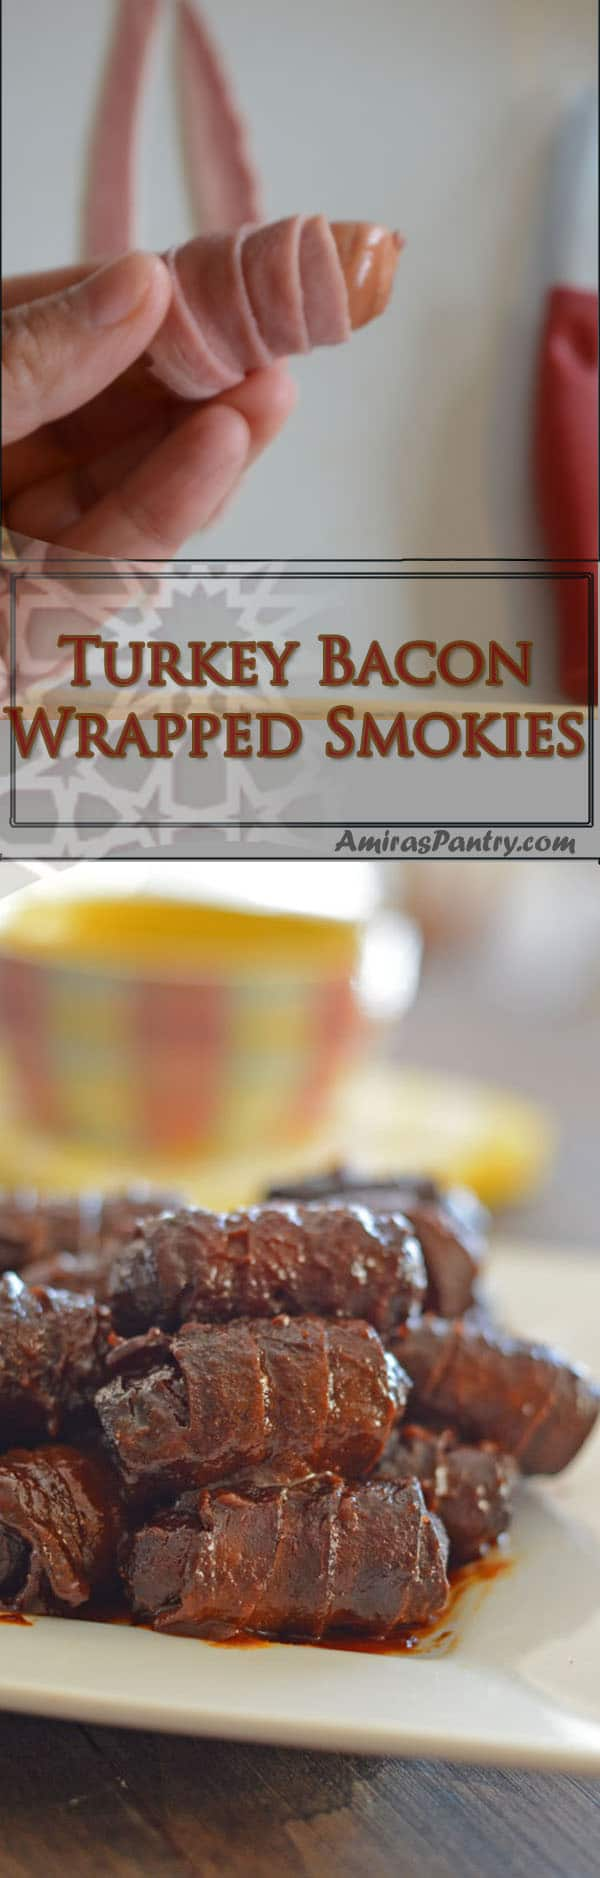 Embrace the sweeter side of the BBQ sauce and whip up a wonderful, easy appetizer for your next party. With the use of your crockpot, this becomes an almost effortless bacon wrapped smokies recipe.